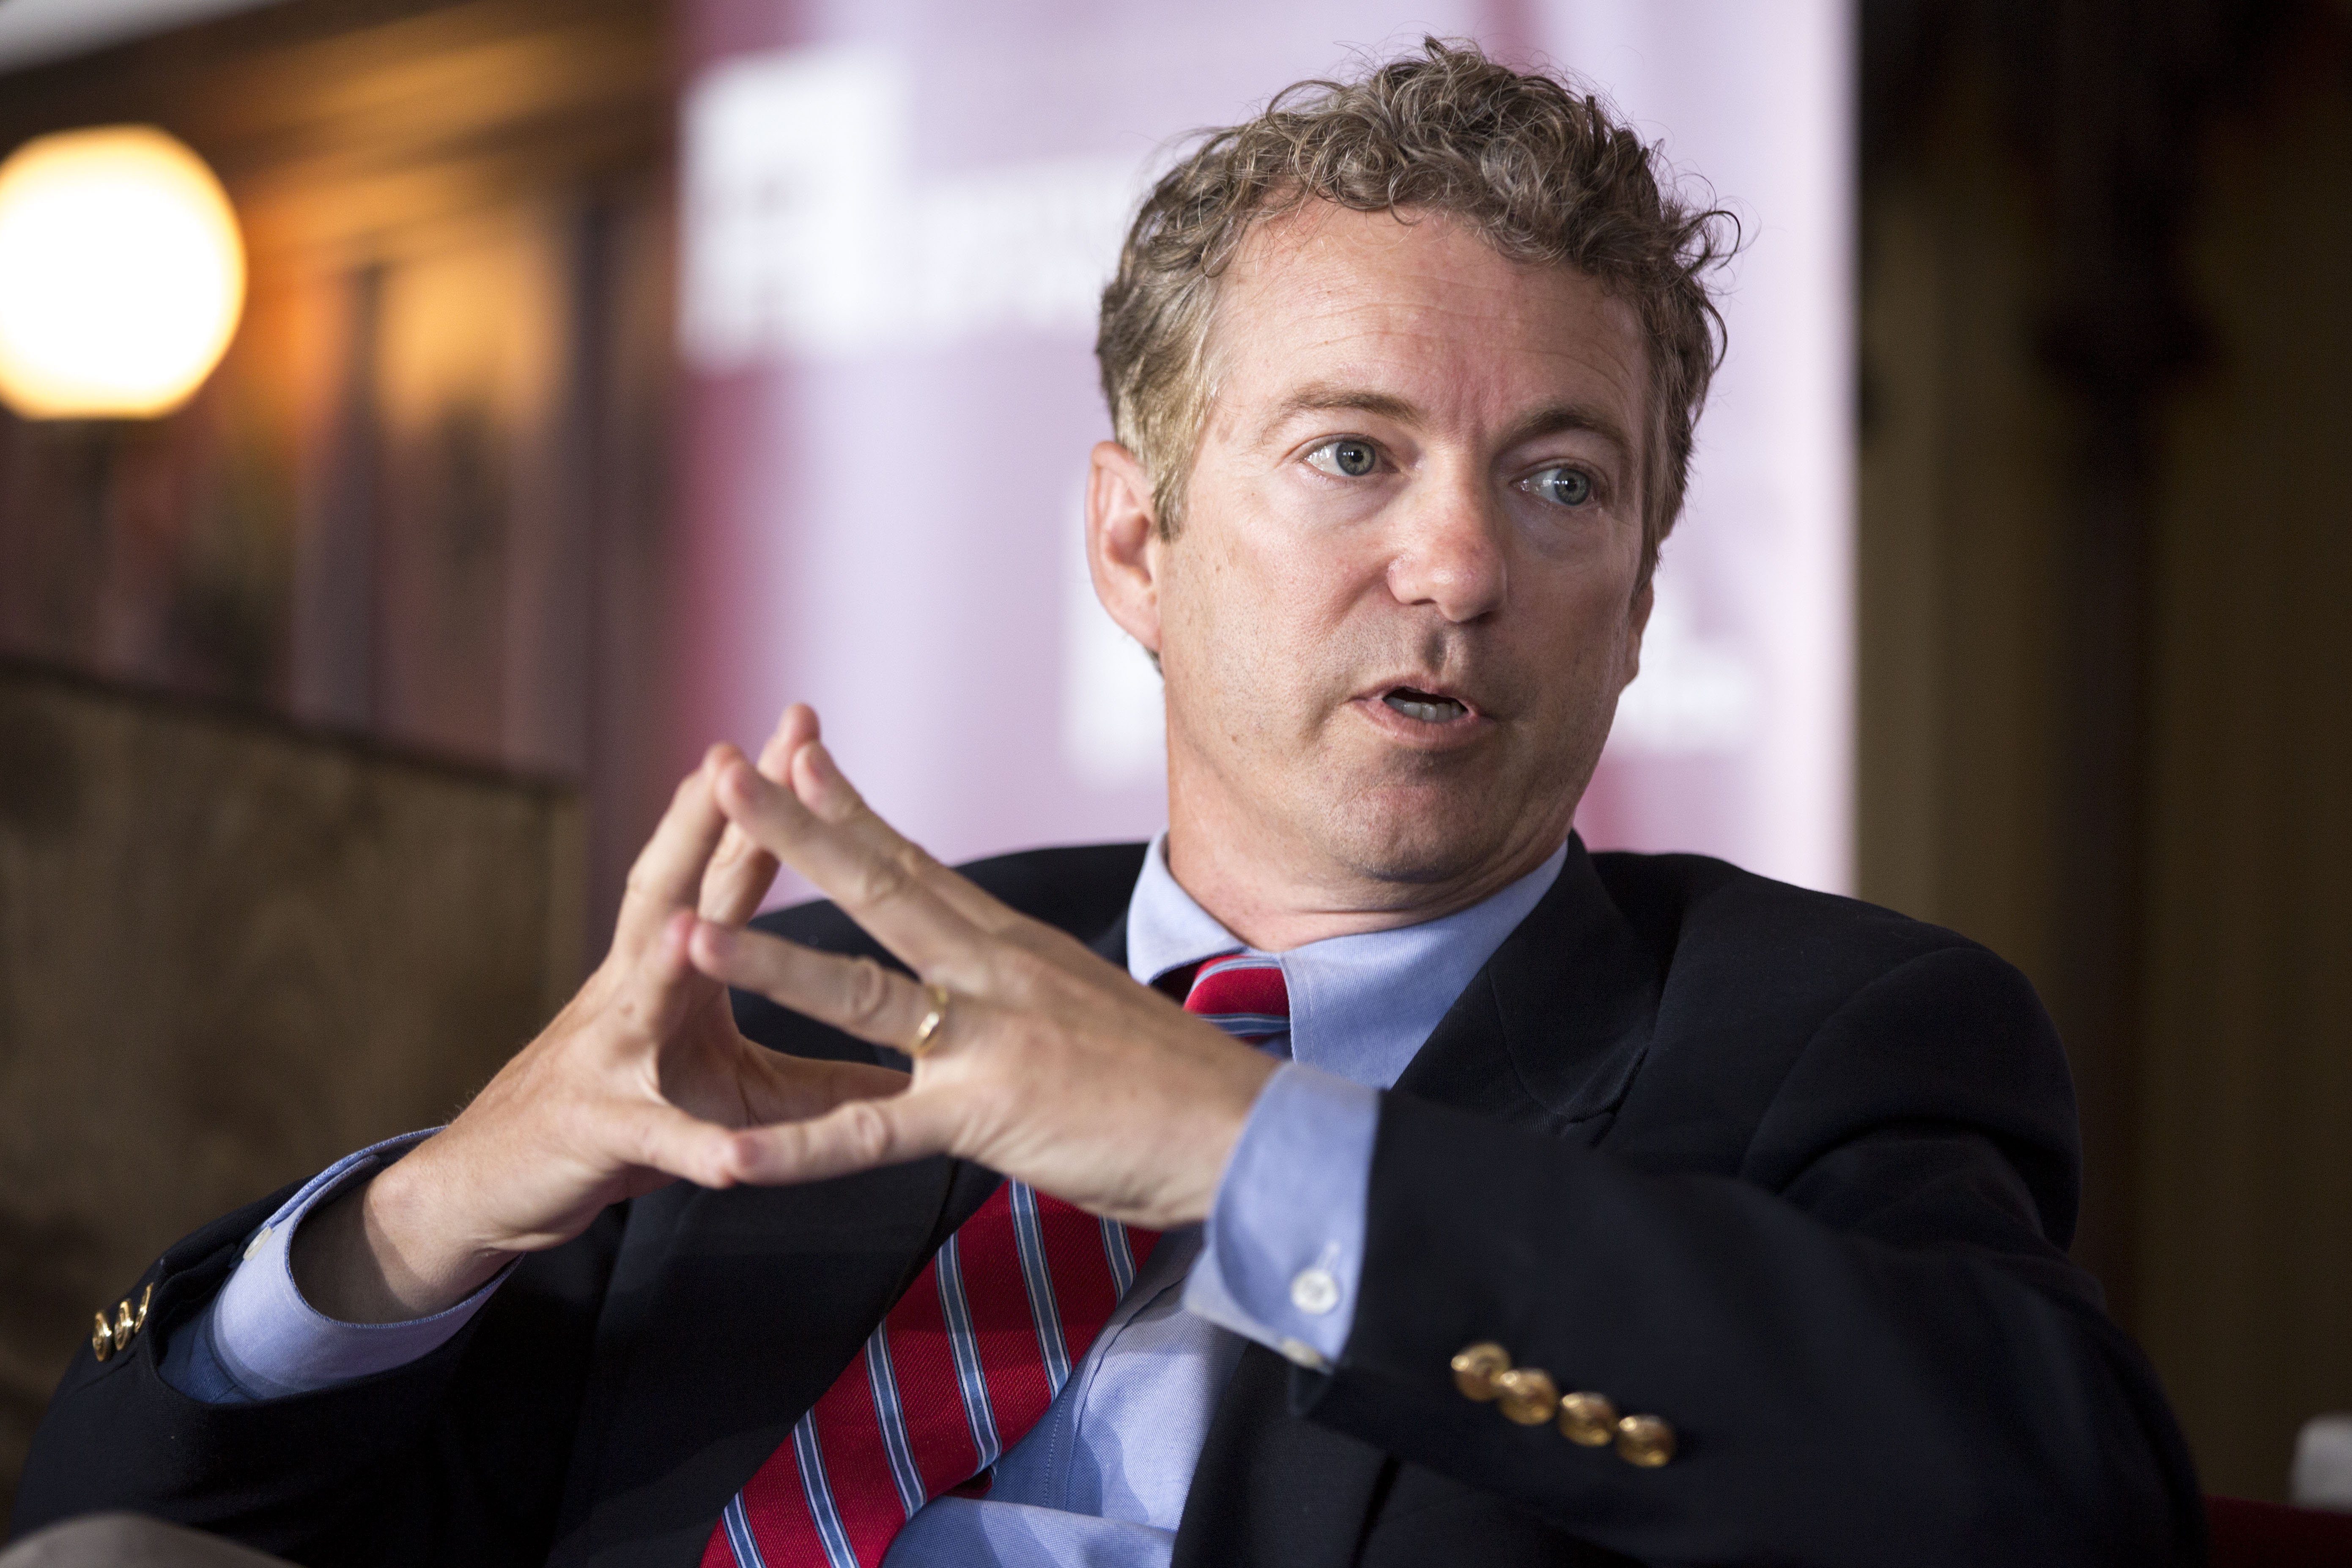 Sen. Rand Paul, R-Ky., speaks during an event at the University of Chicago's Ida Noyes Hall in Chicago on April 22, 2014.